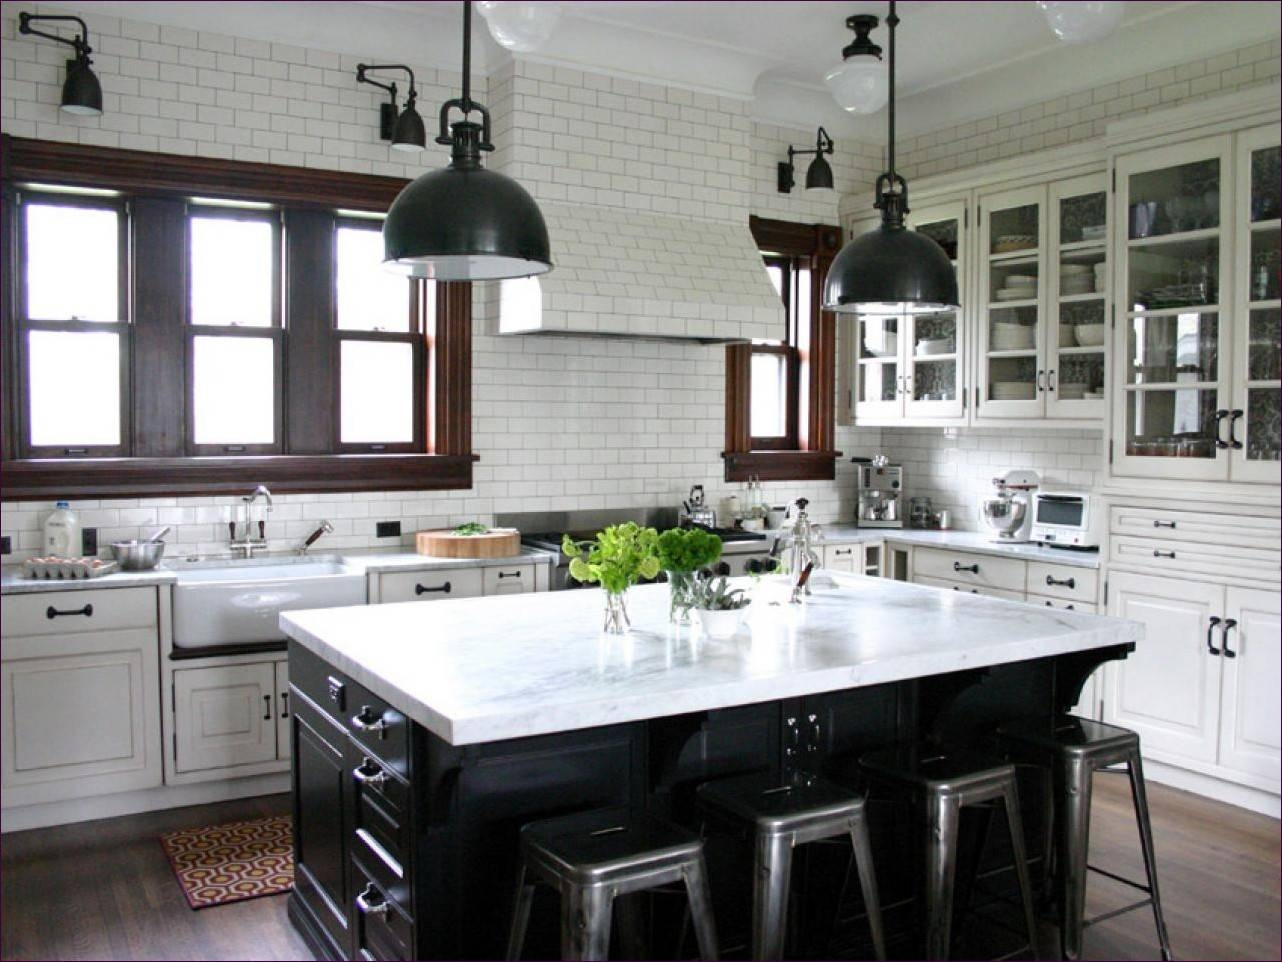 Kitchen Room : Amazing Simple French Country Decor French Country For 2018 French Country Wall Art (View 13 of 20)